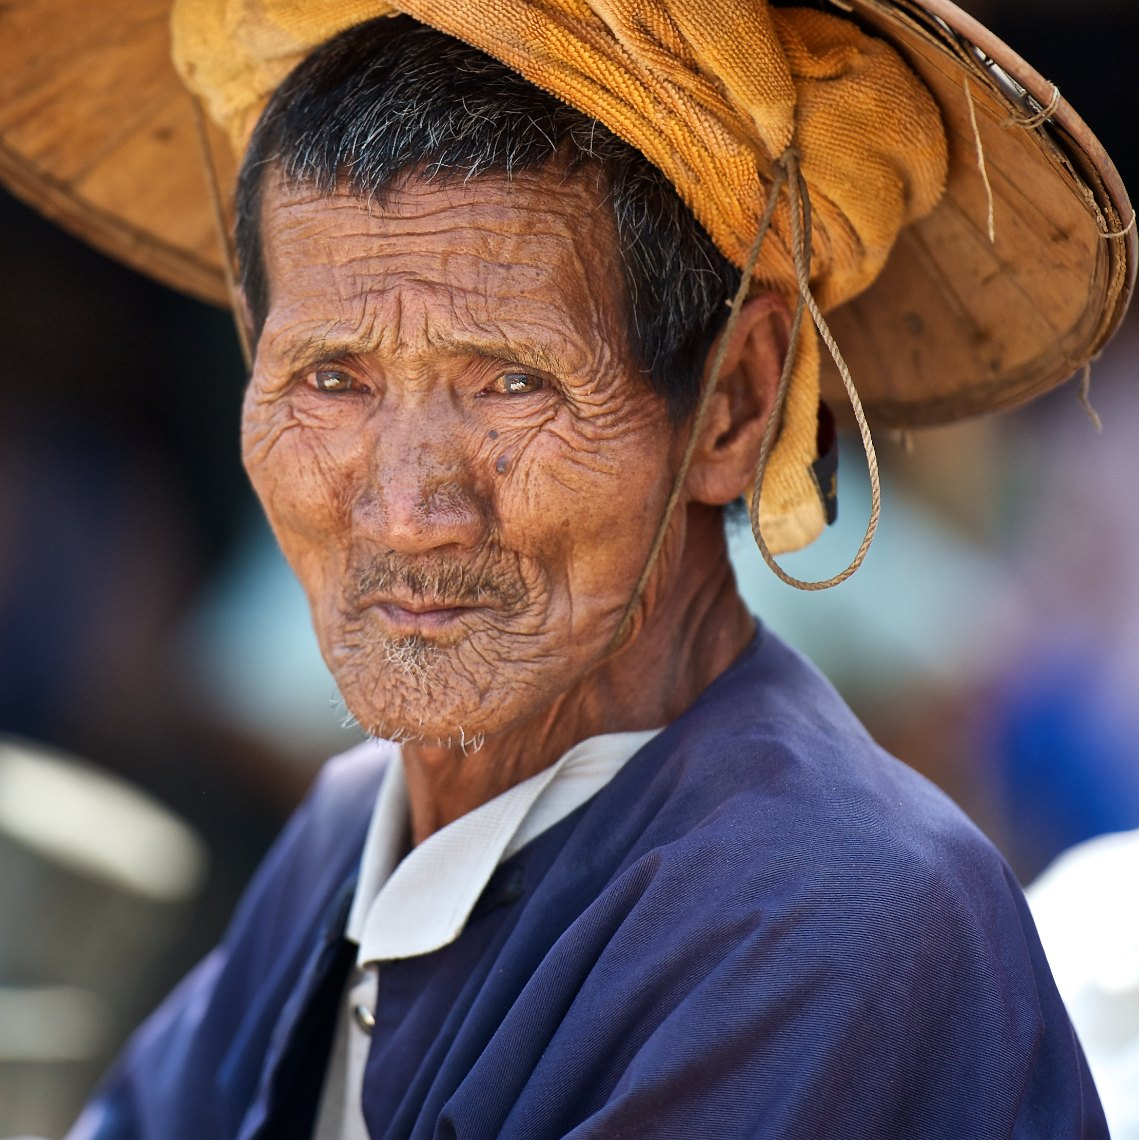 Burma Inle Lake portrait man